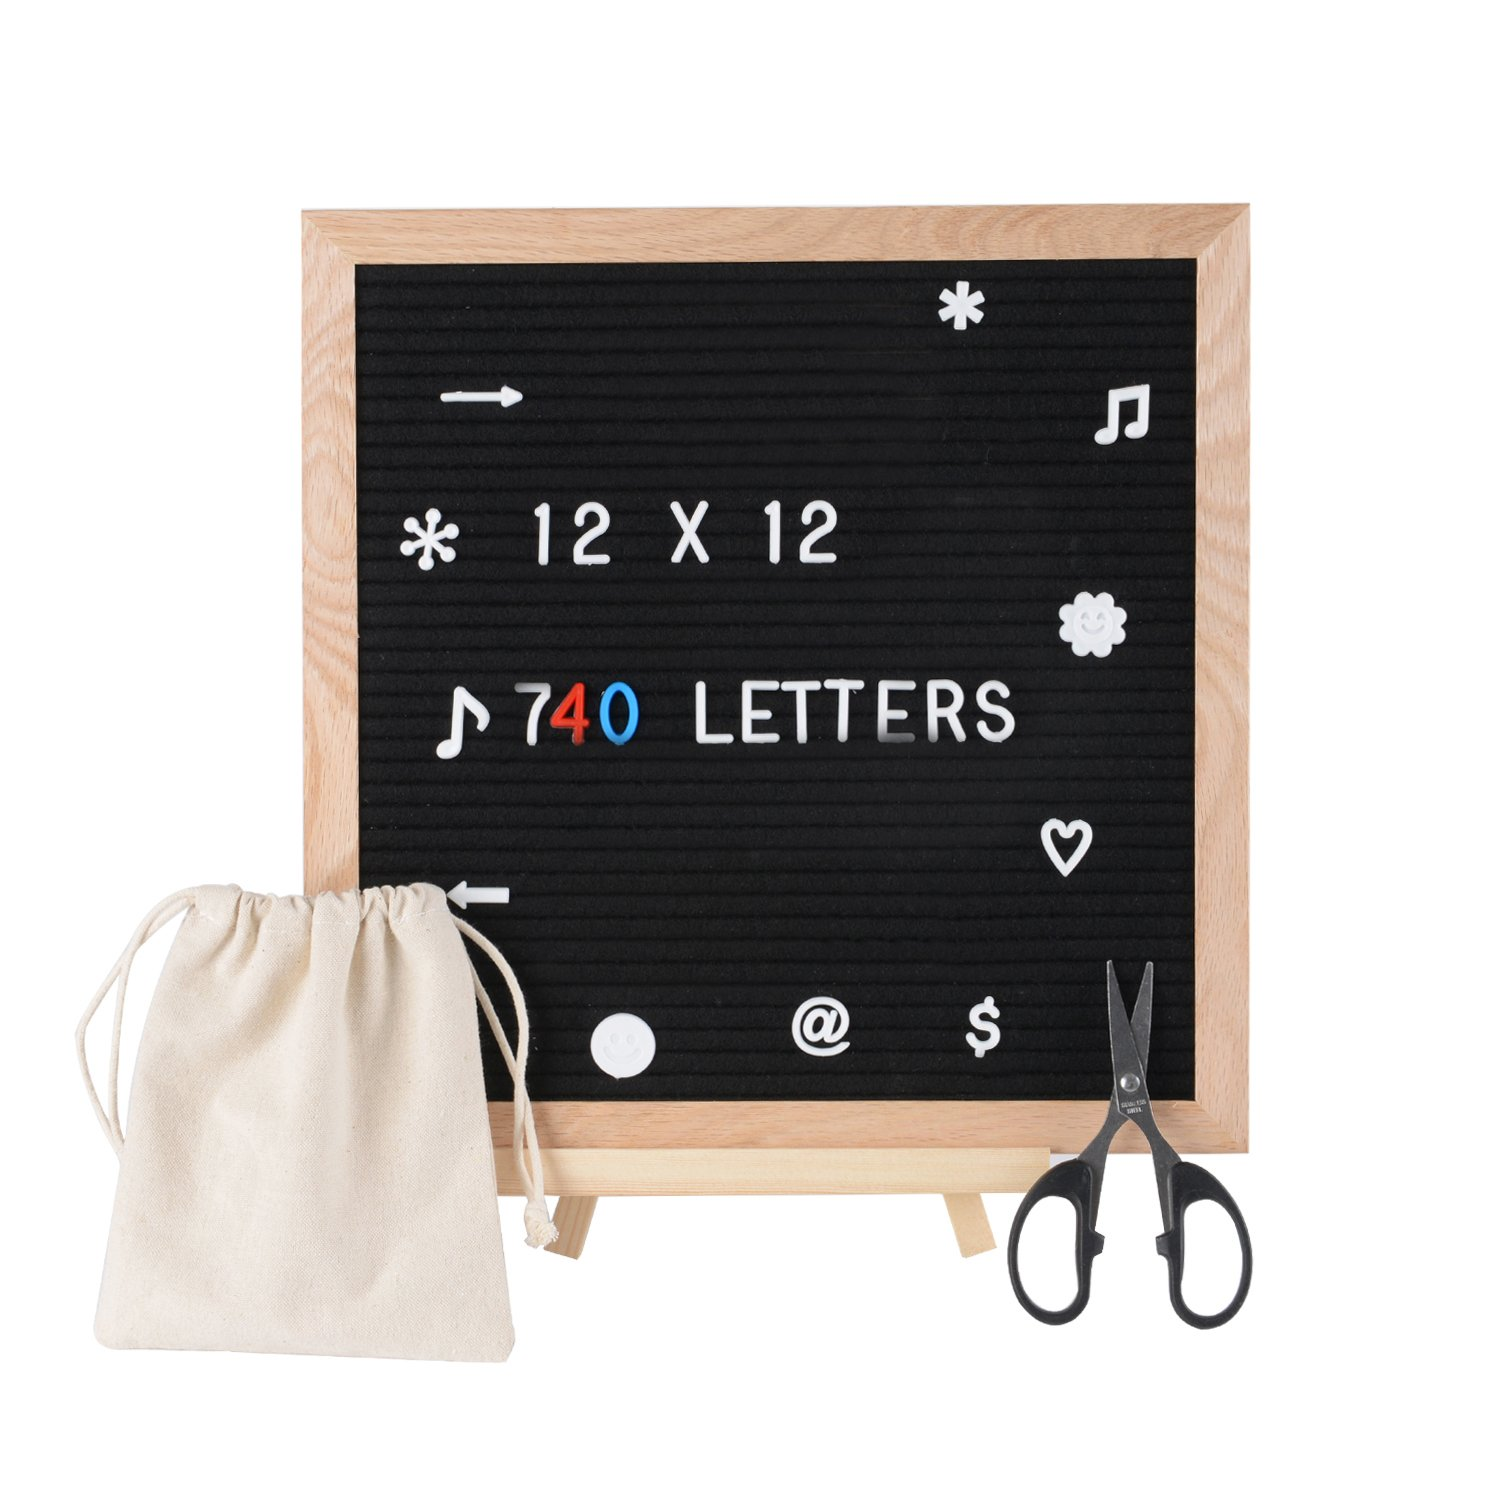 SPACECARE Letter Board 12 x 12 Inches with 720PCS White Blue Golden Letters, Changeable Felt Letter Board for Office, Restaurant, DIY Frame Sign